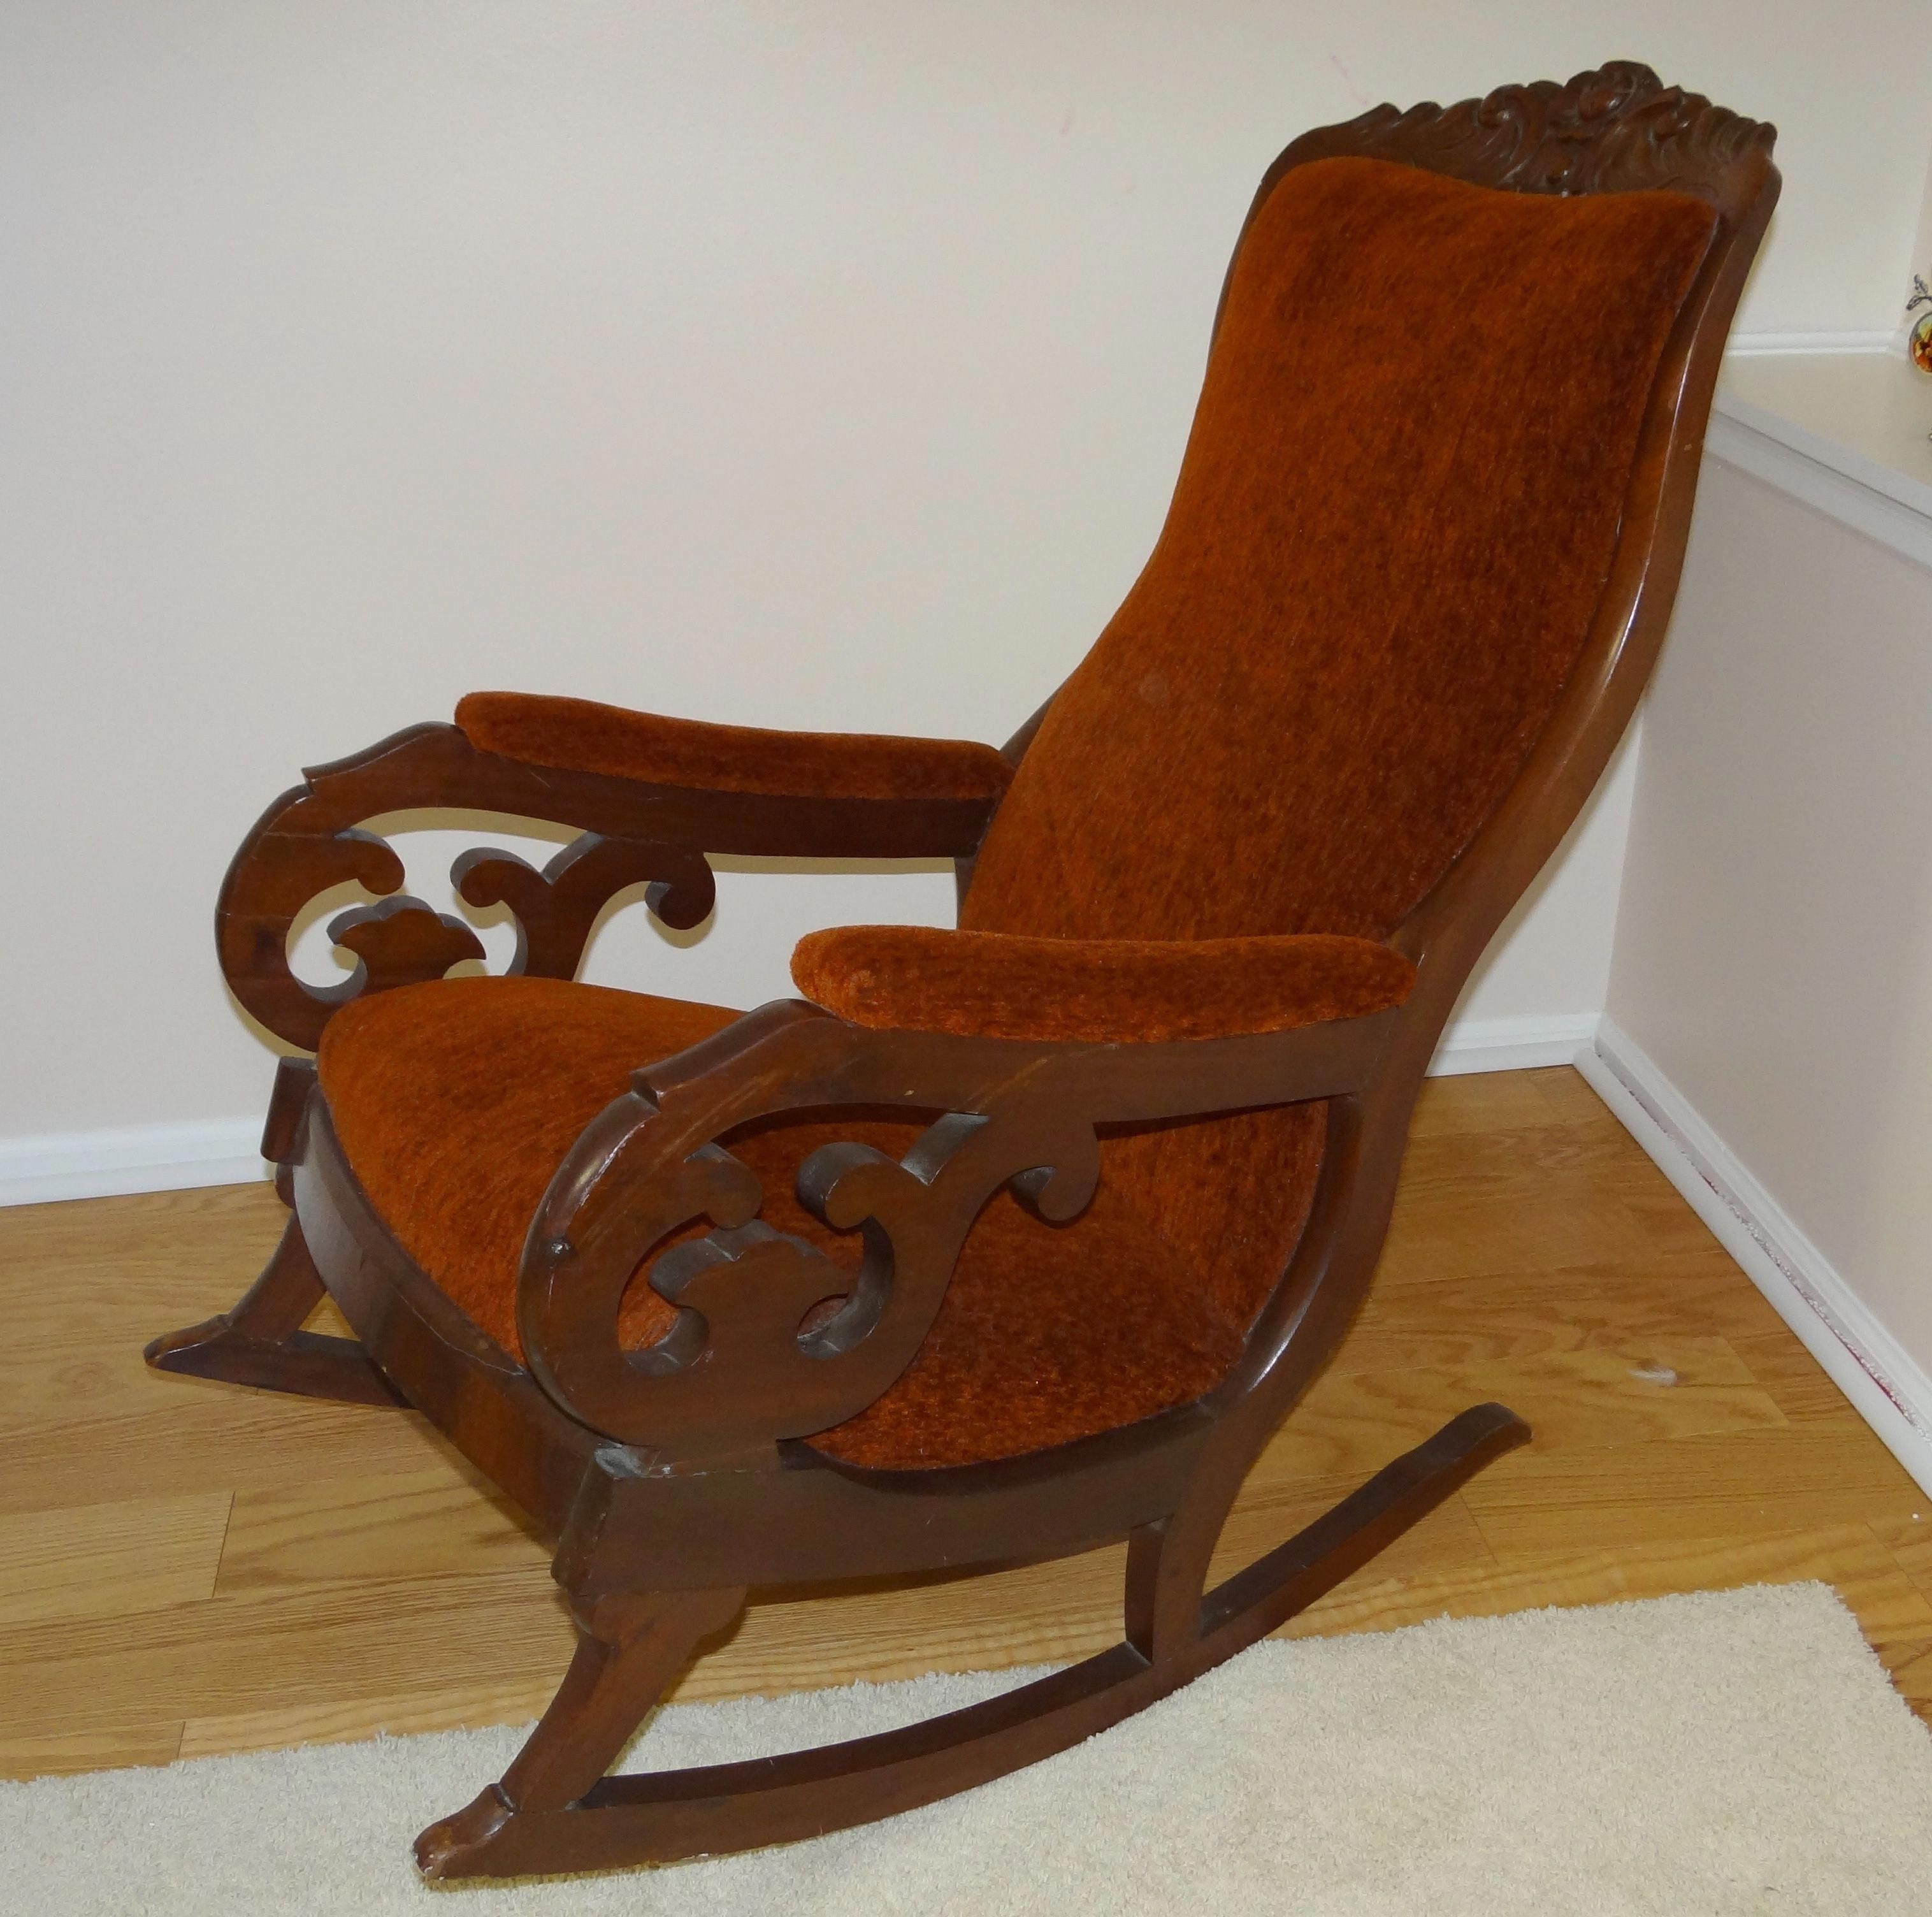 Find great deals on ebay for vintage rocking chair in